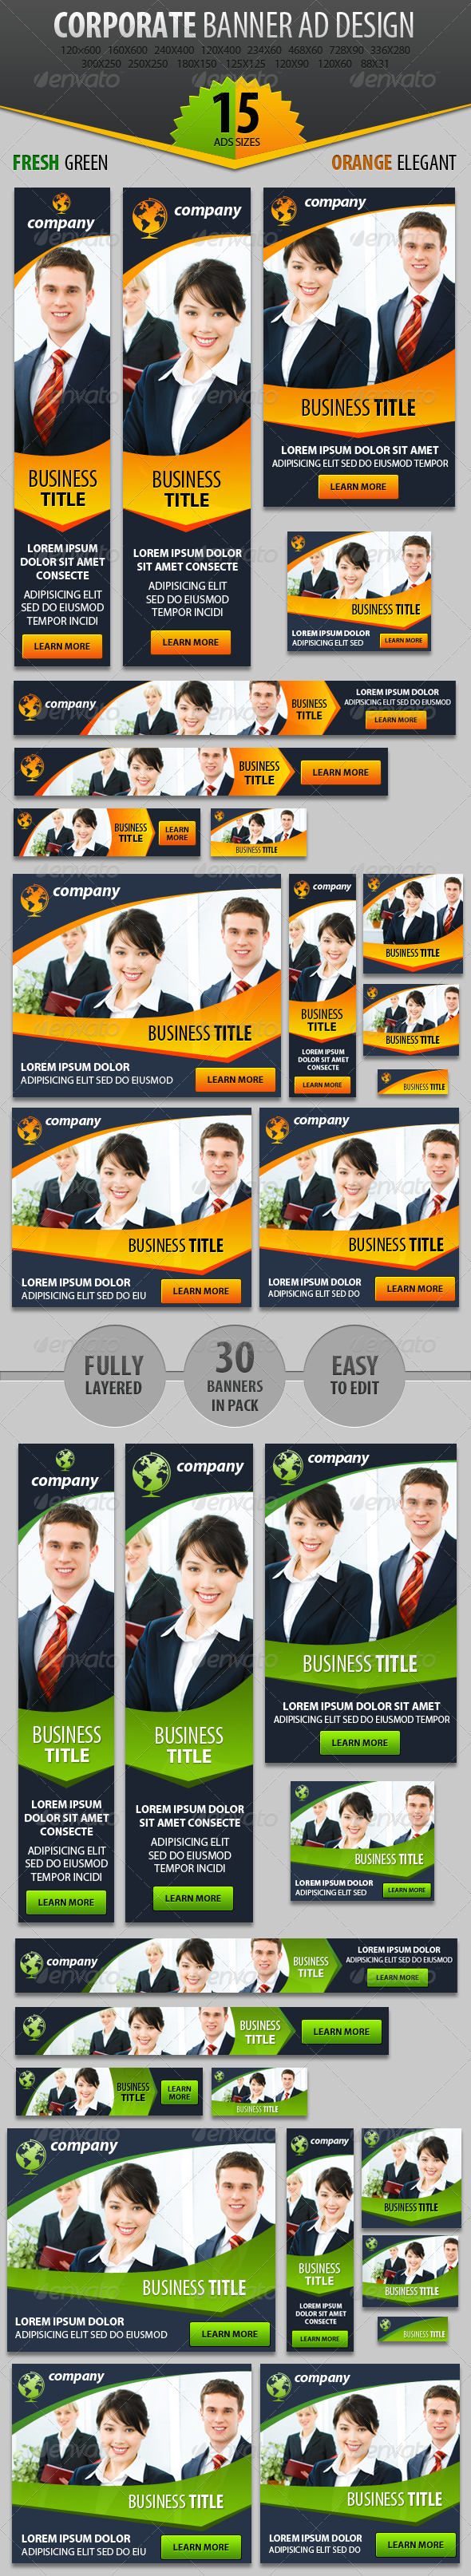 Business Web Banner ad Design